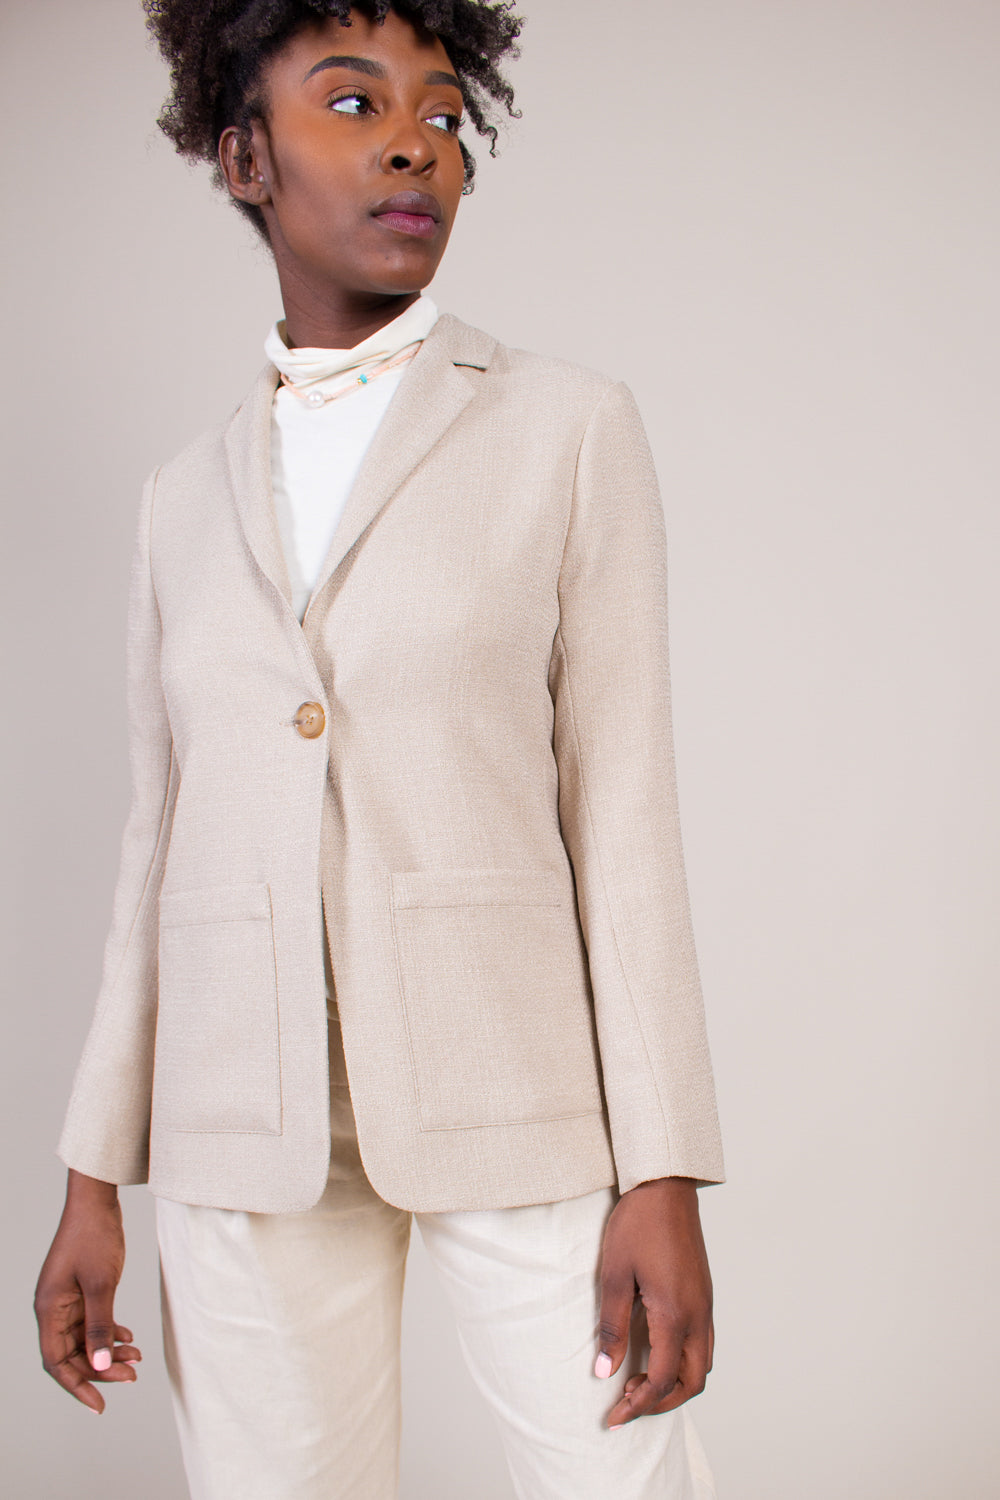 Grei One Button Suit Jacket in Khaki - Vert & Vogue